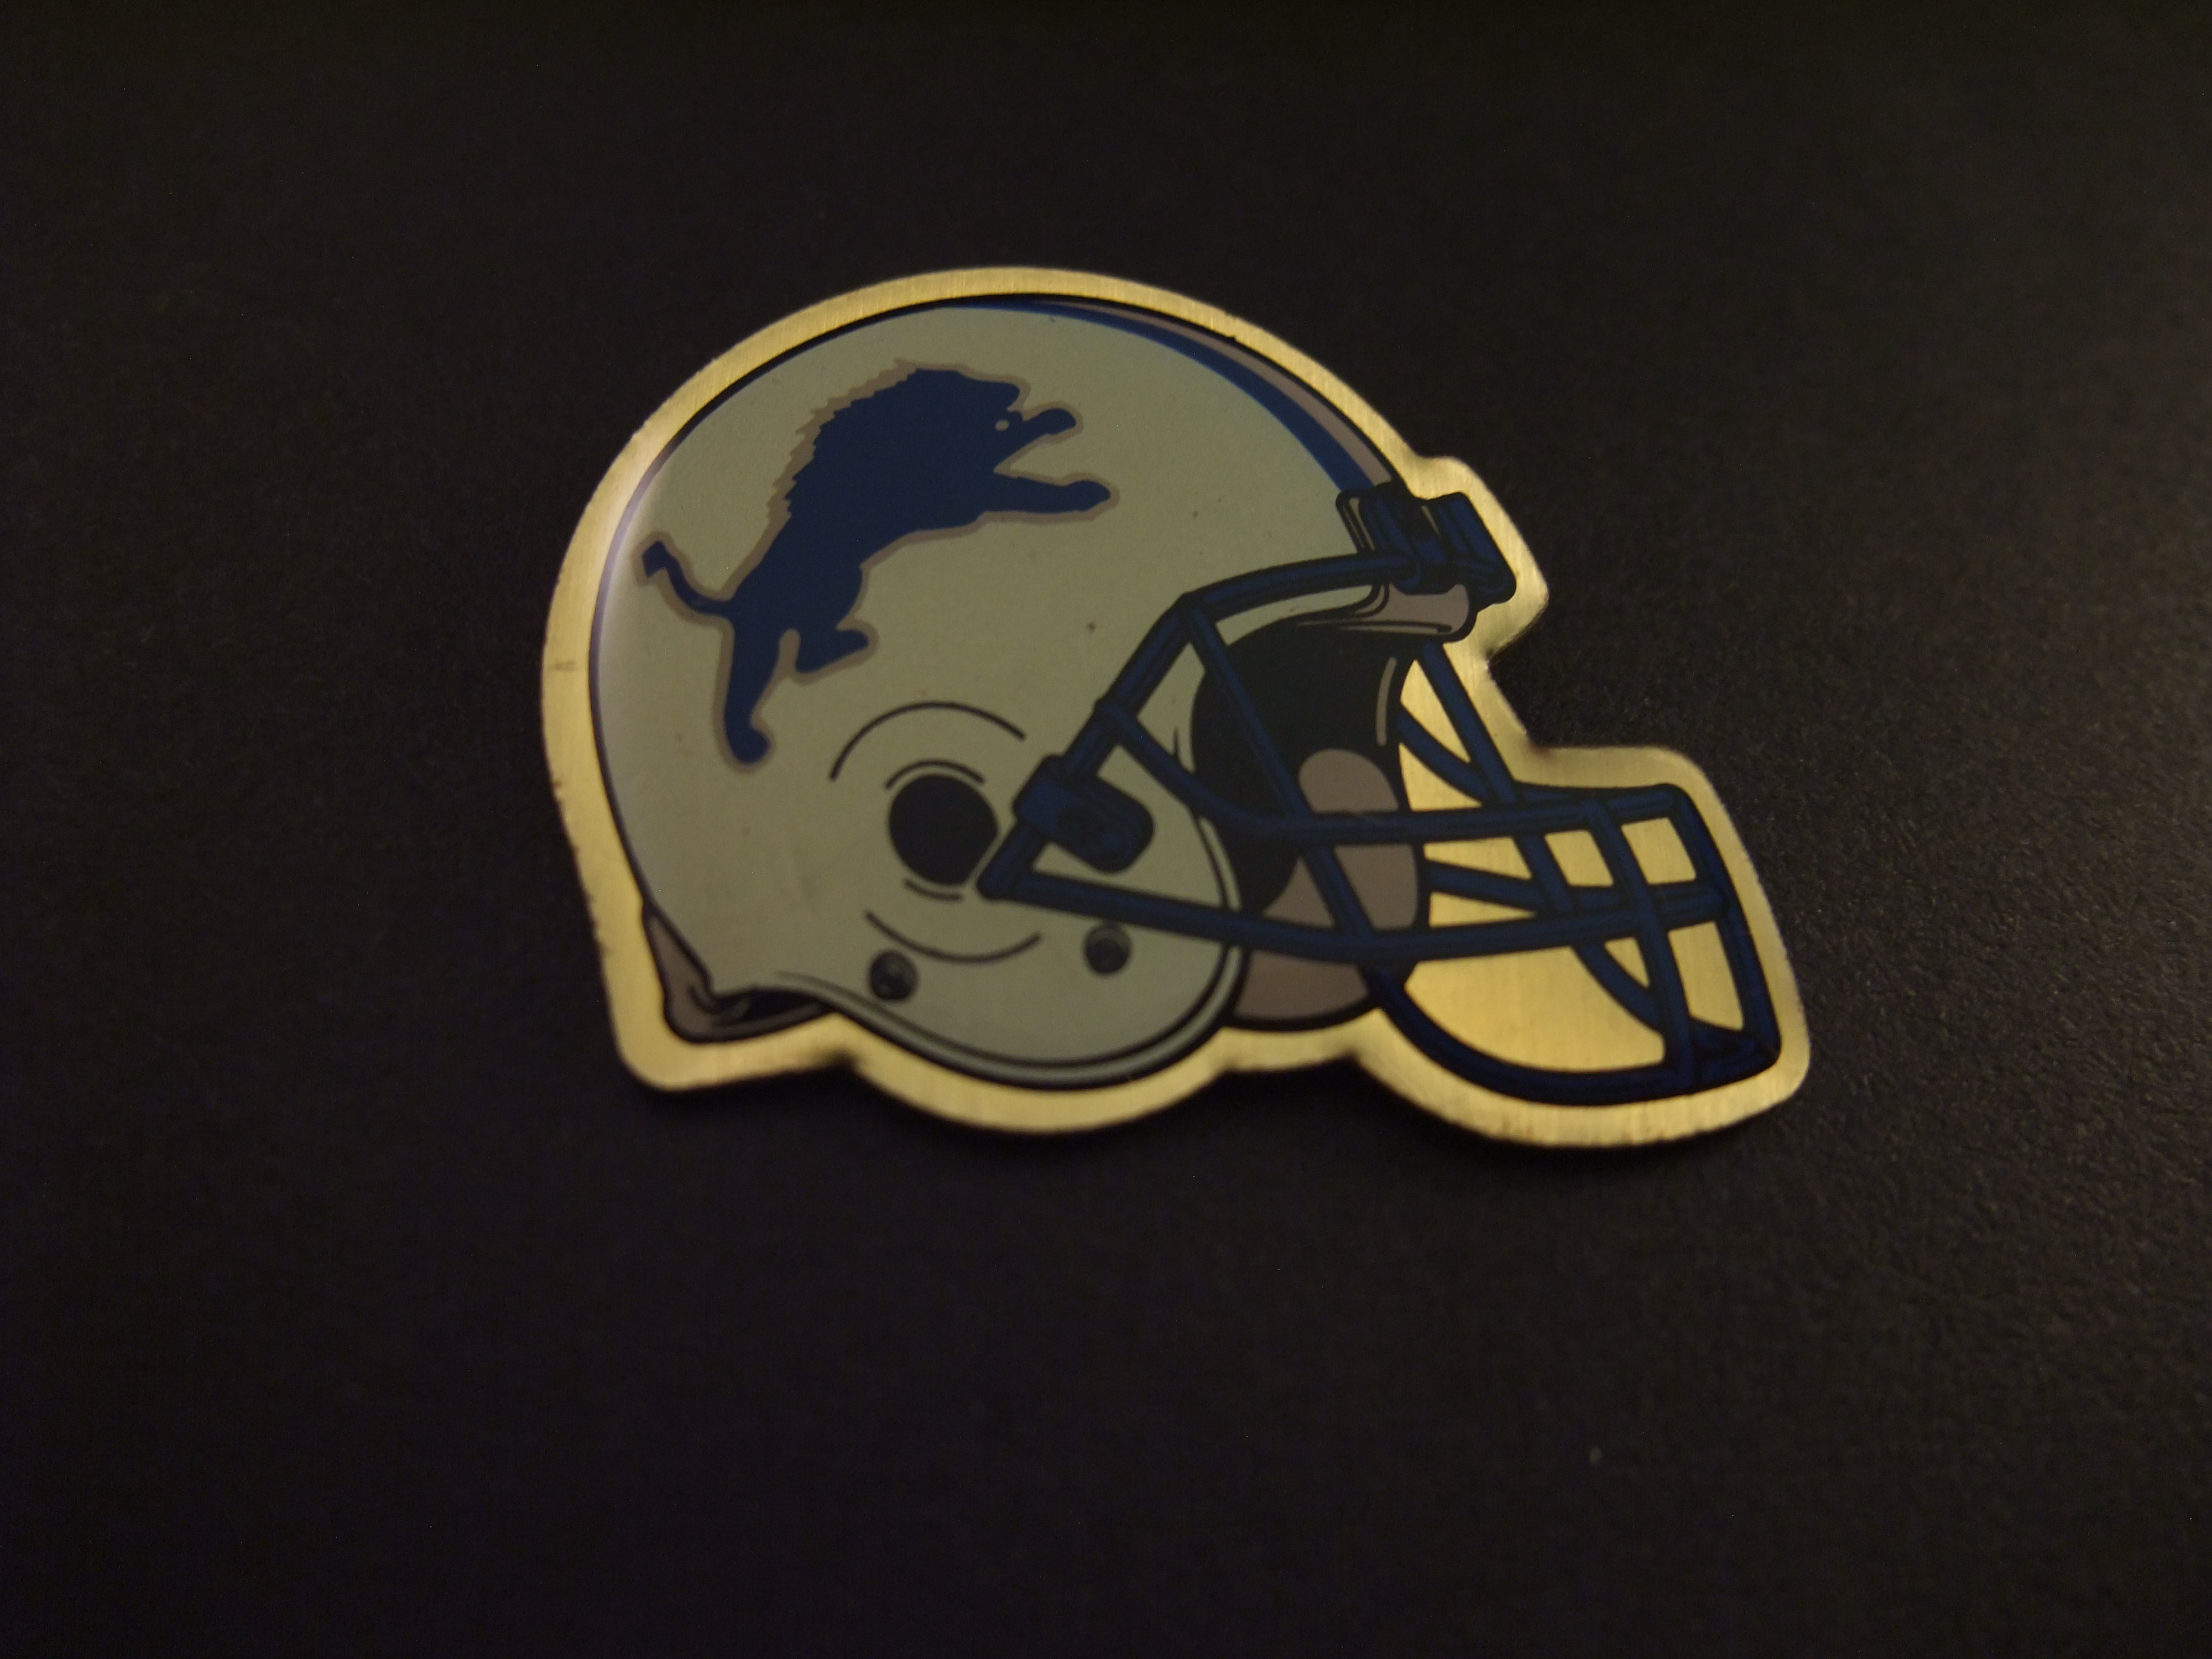 The Detroit Lions American football team NFL(National Football Conference)  helm